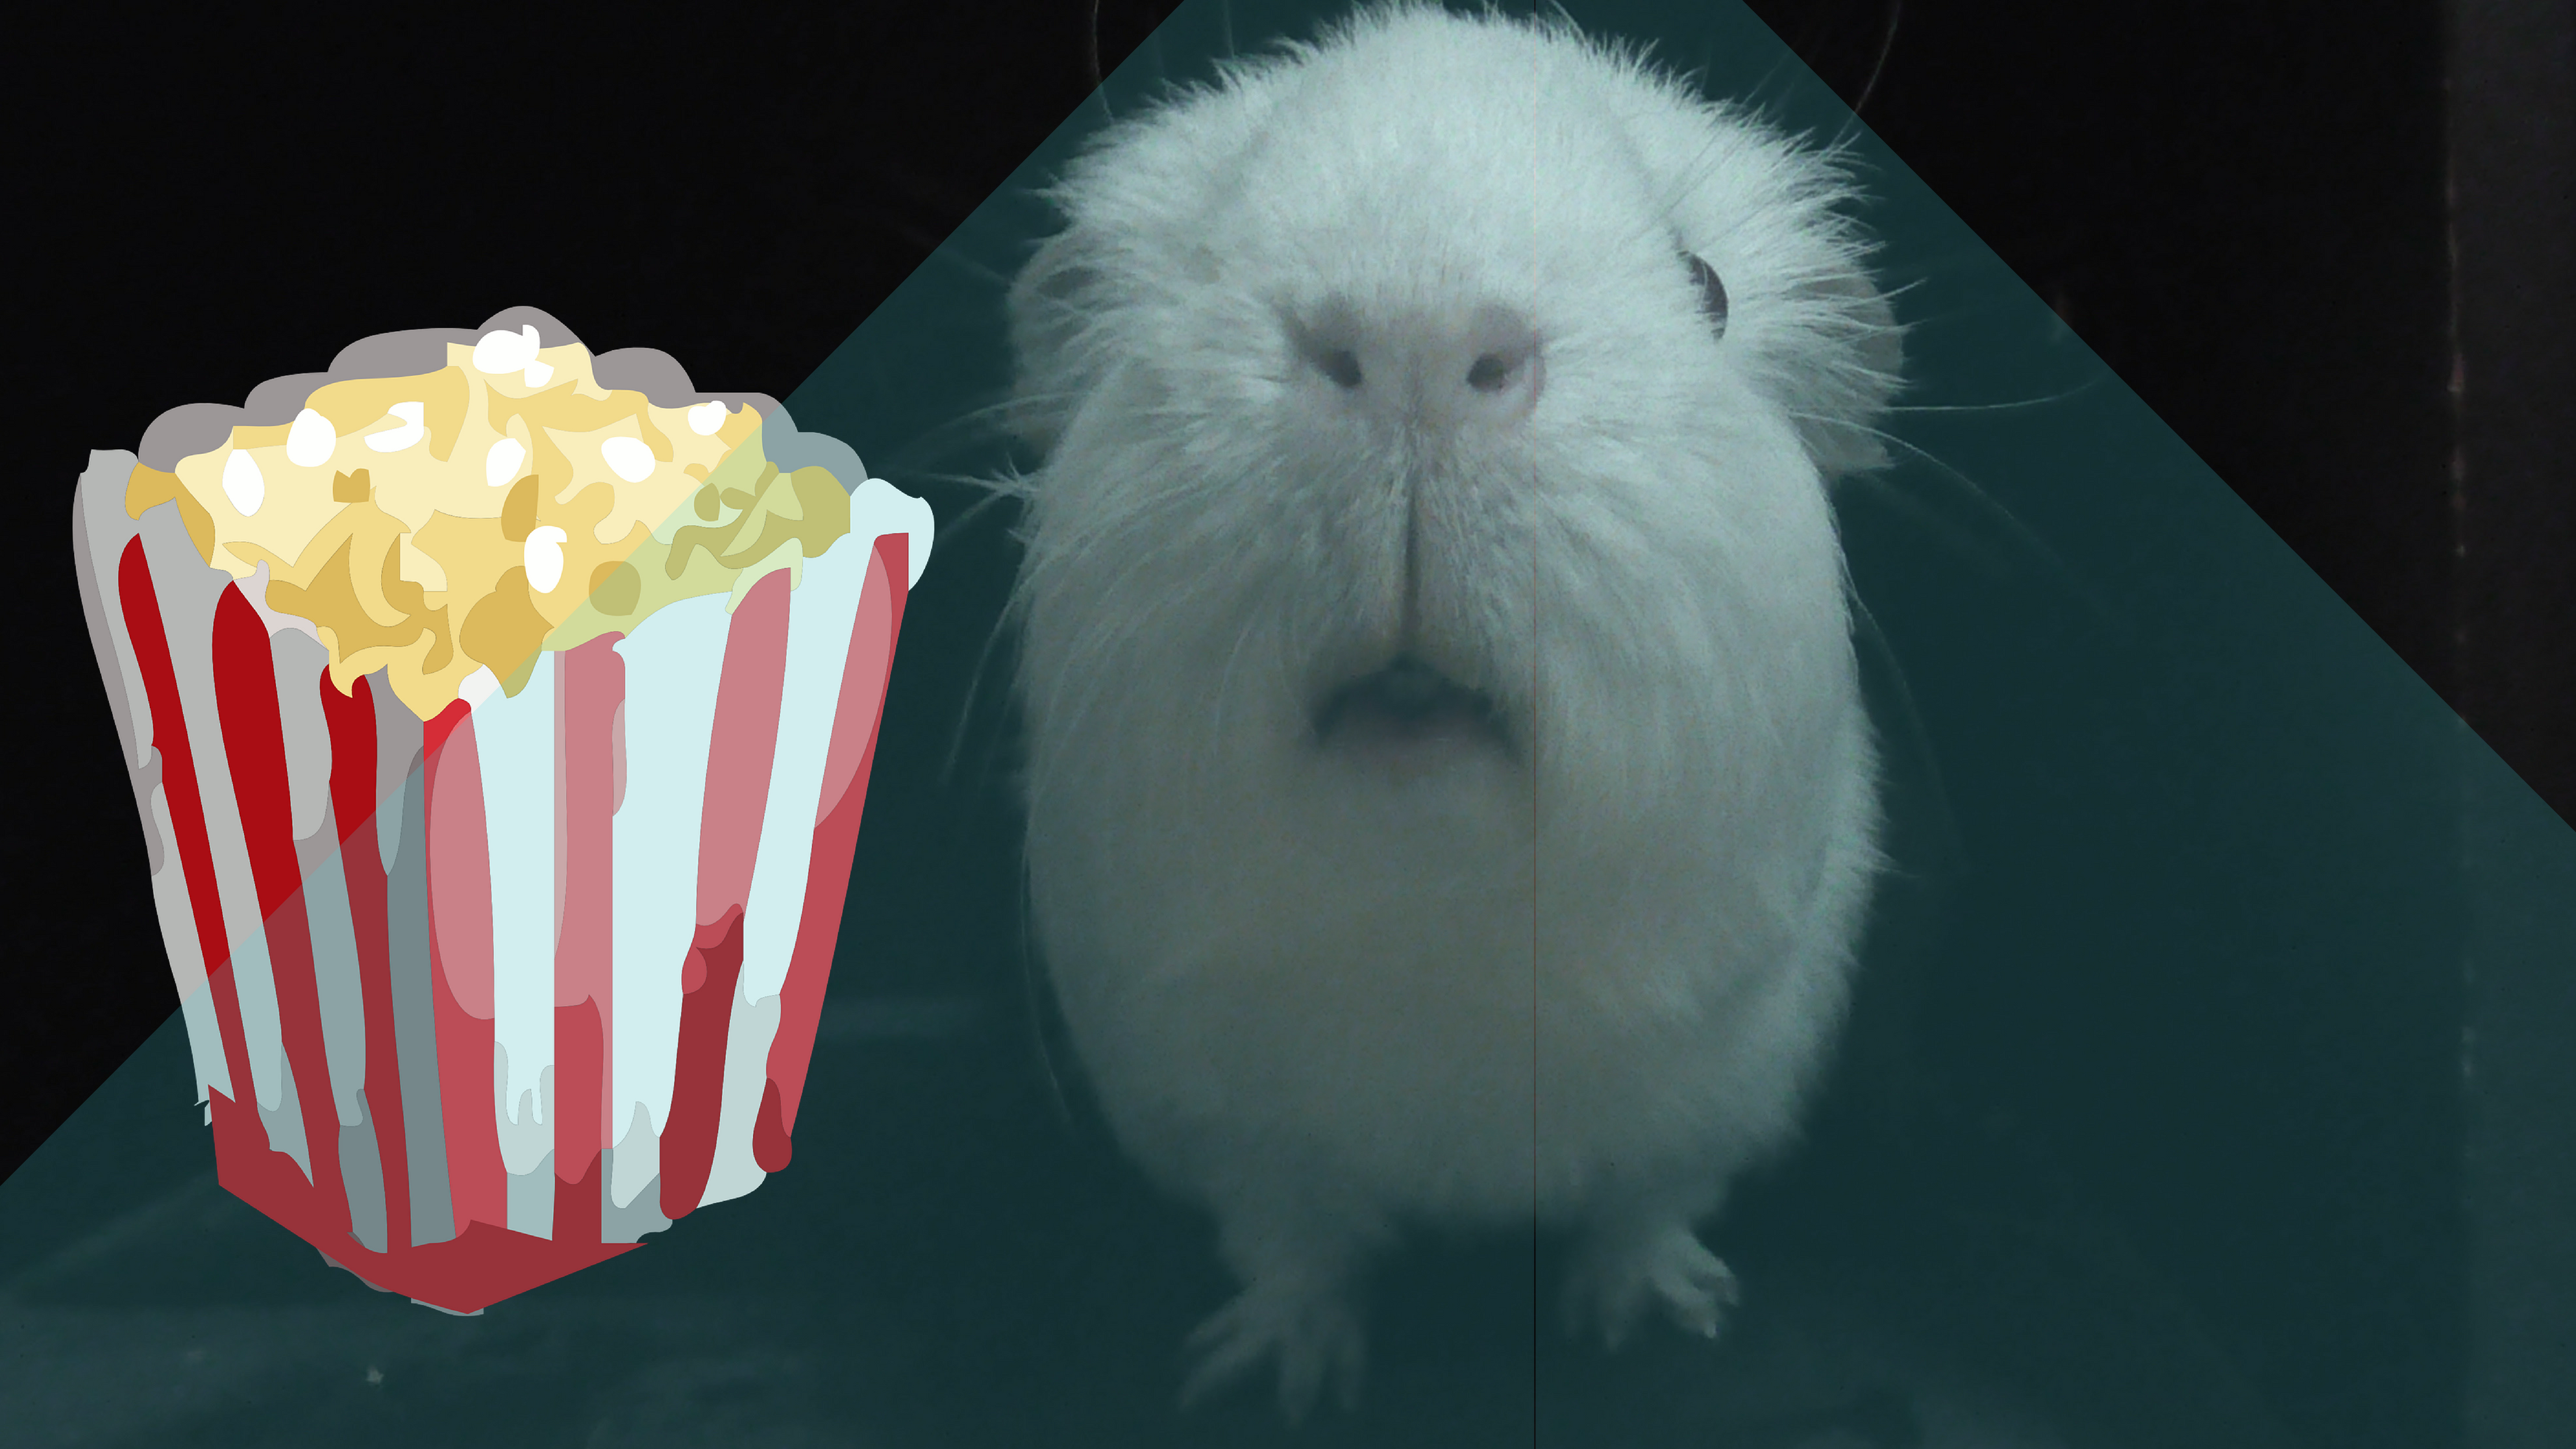 Movie Guineapig After A Hard Days Eating Its Always Good To Sit Back And Watch A Film